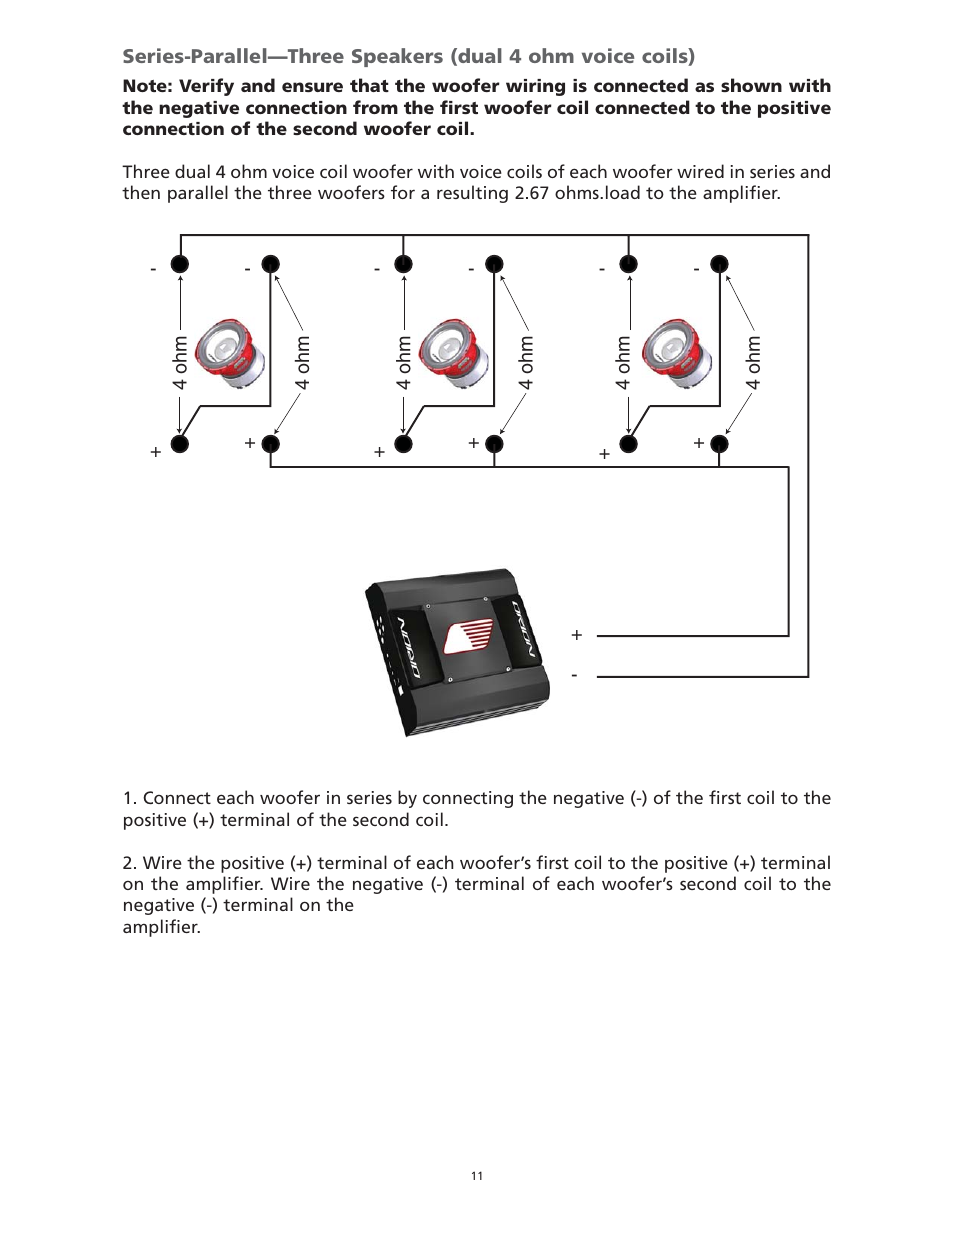 [GJFJ_338]  Orion Car Audio HCCA 15.2 User Manual   Page 11 / 23   Also for: HCCA 12.4,  HCCA 10.2, HCCA 12.2   Orion Hcca 15 Wiring Diagram      Manuals Directory